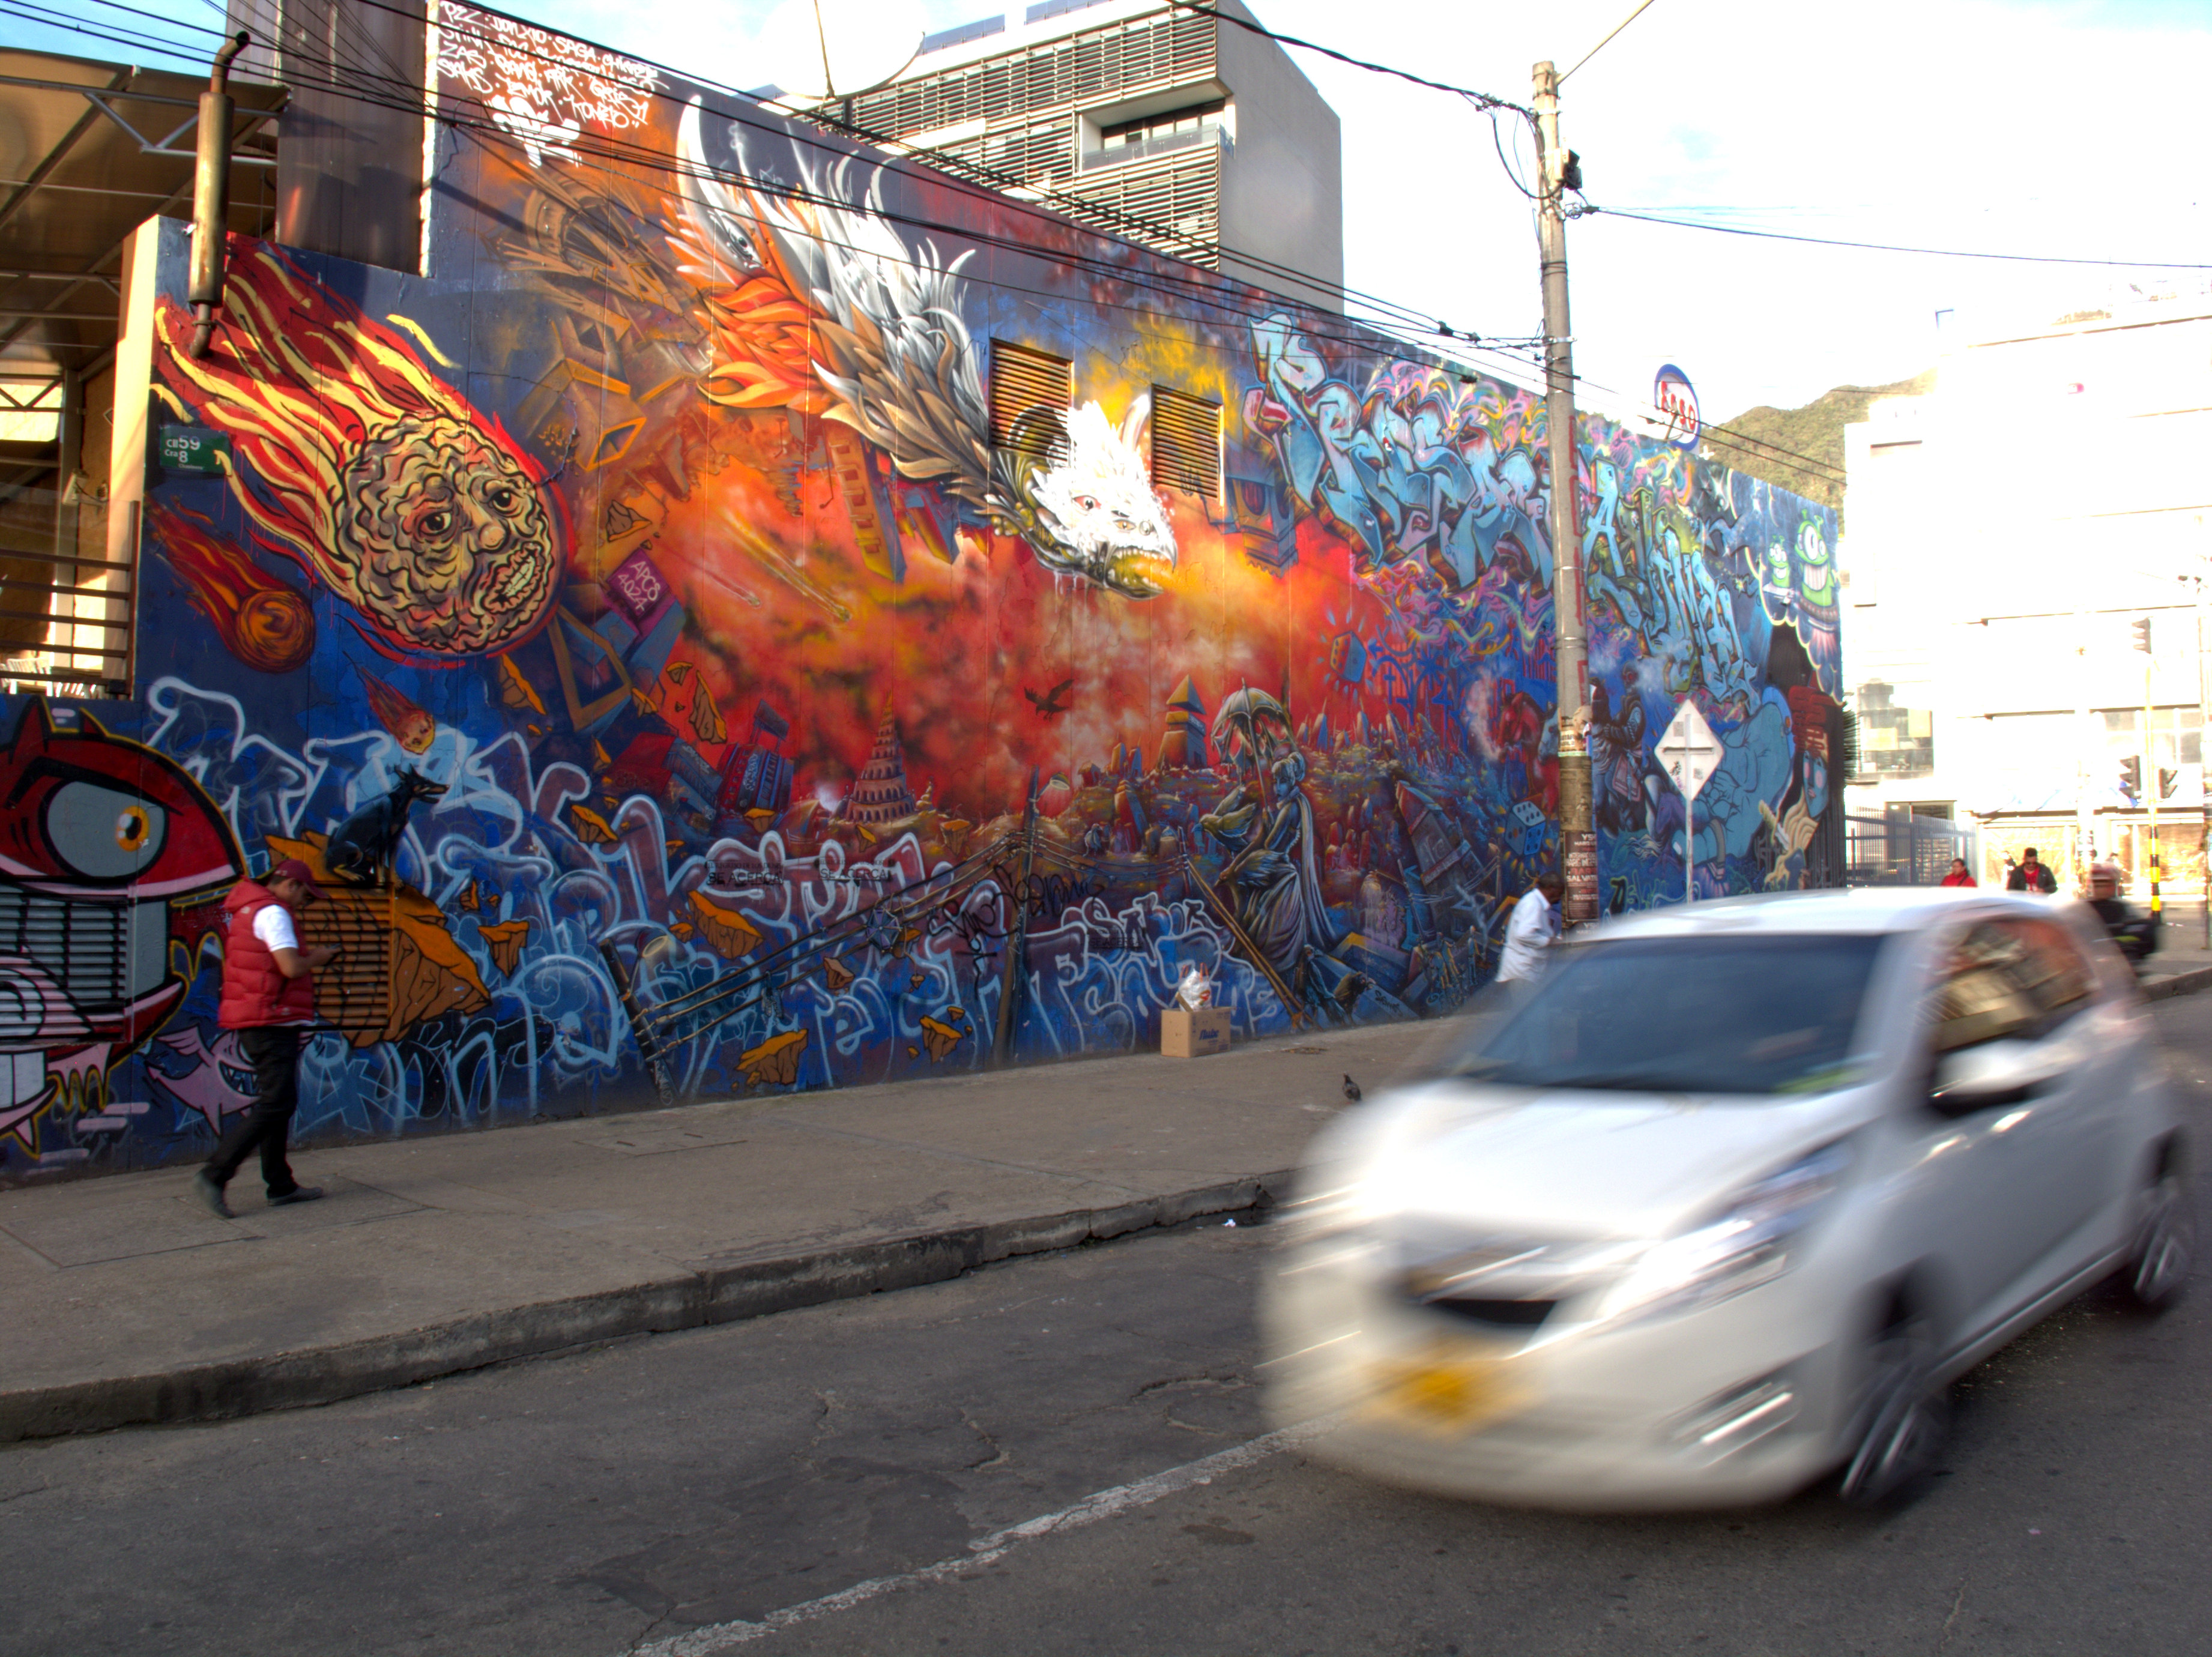 Bogota Graffiti: Larger than life